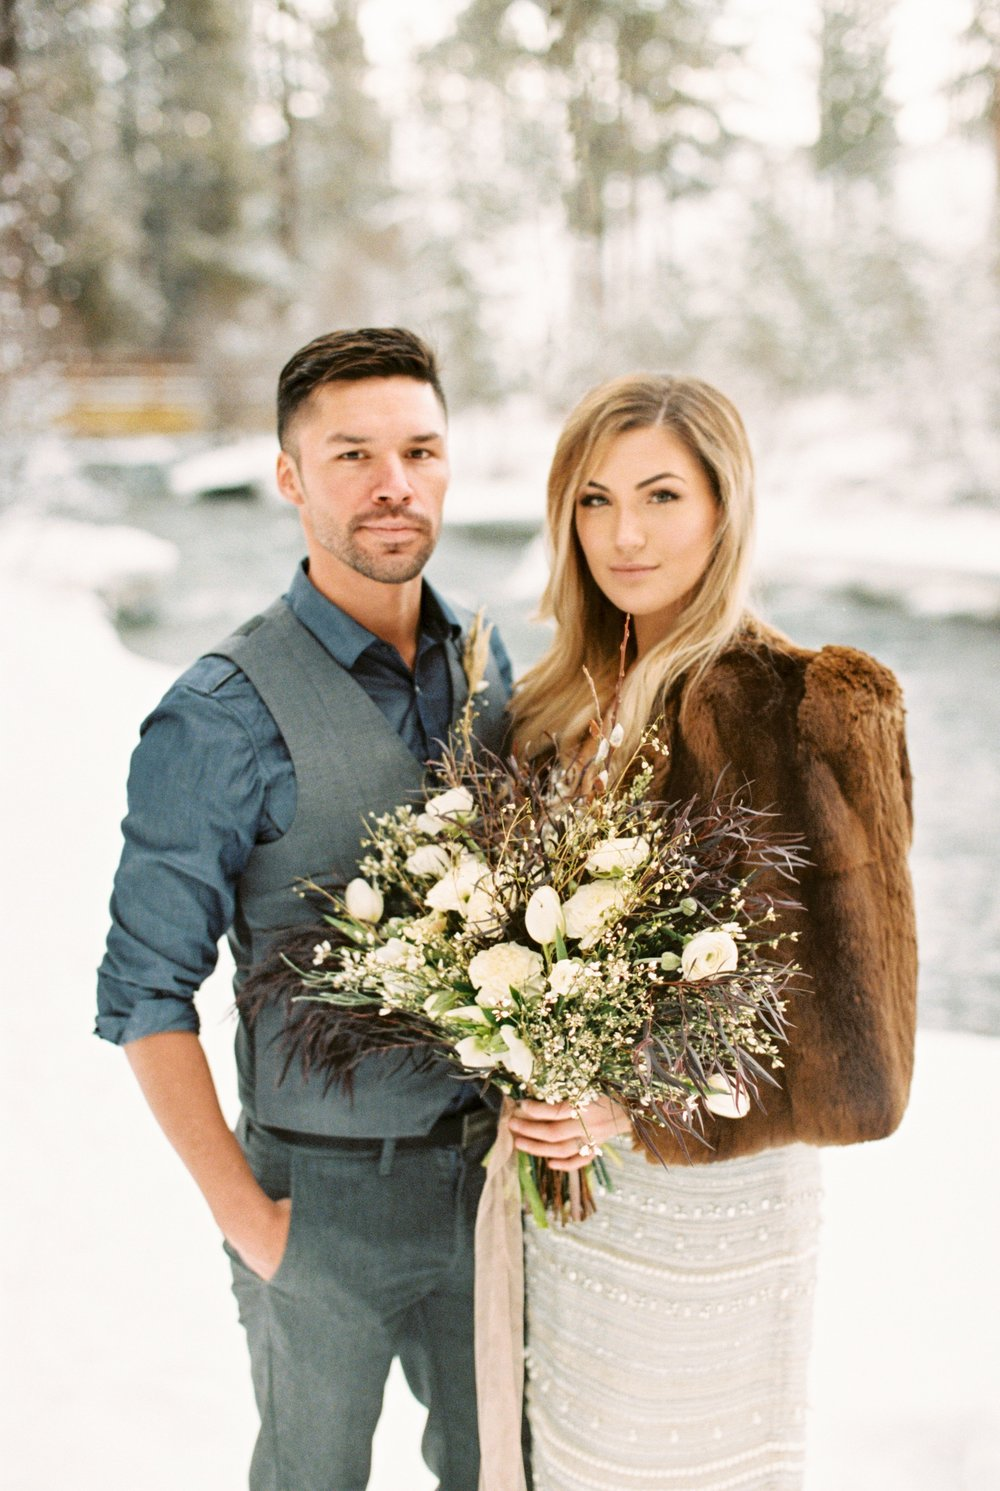 couplewithbouquet.jpg